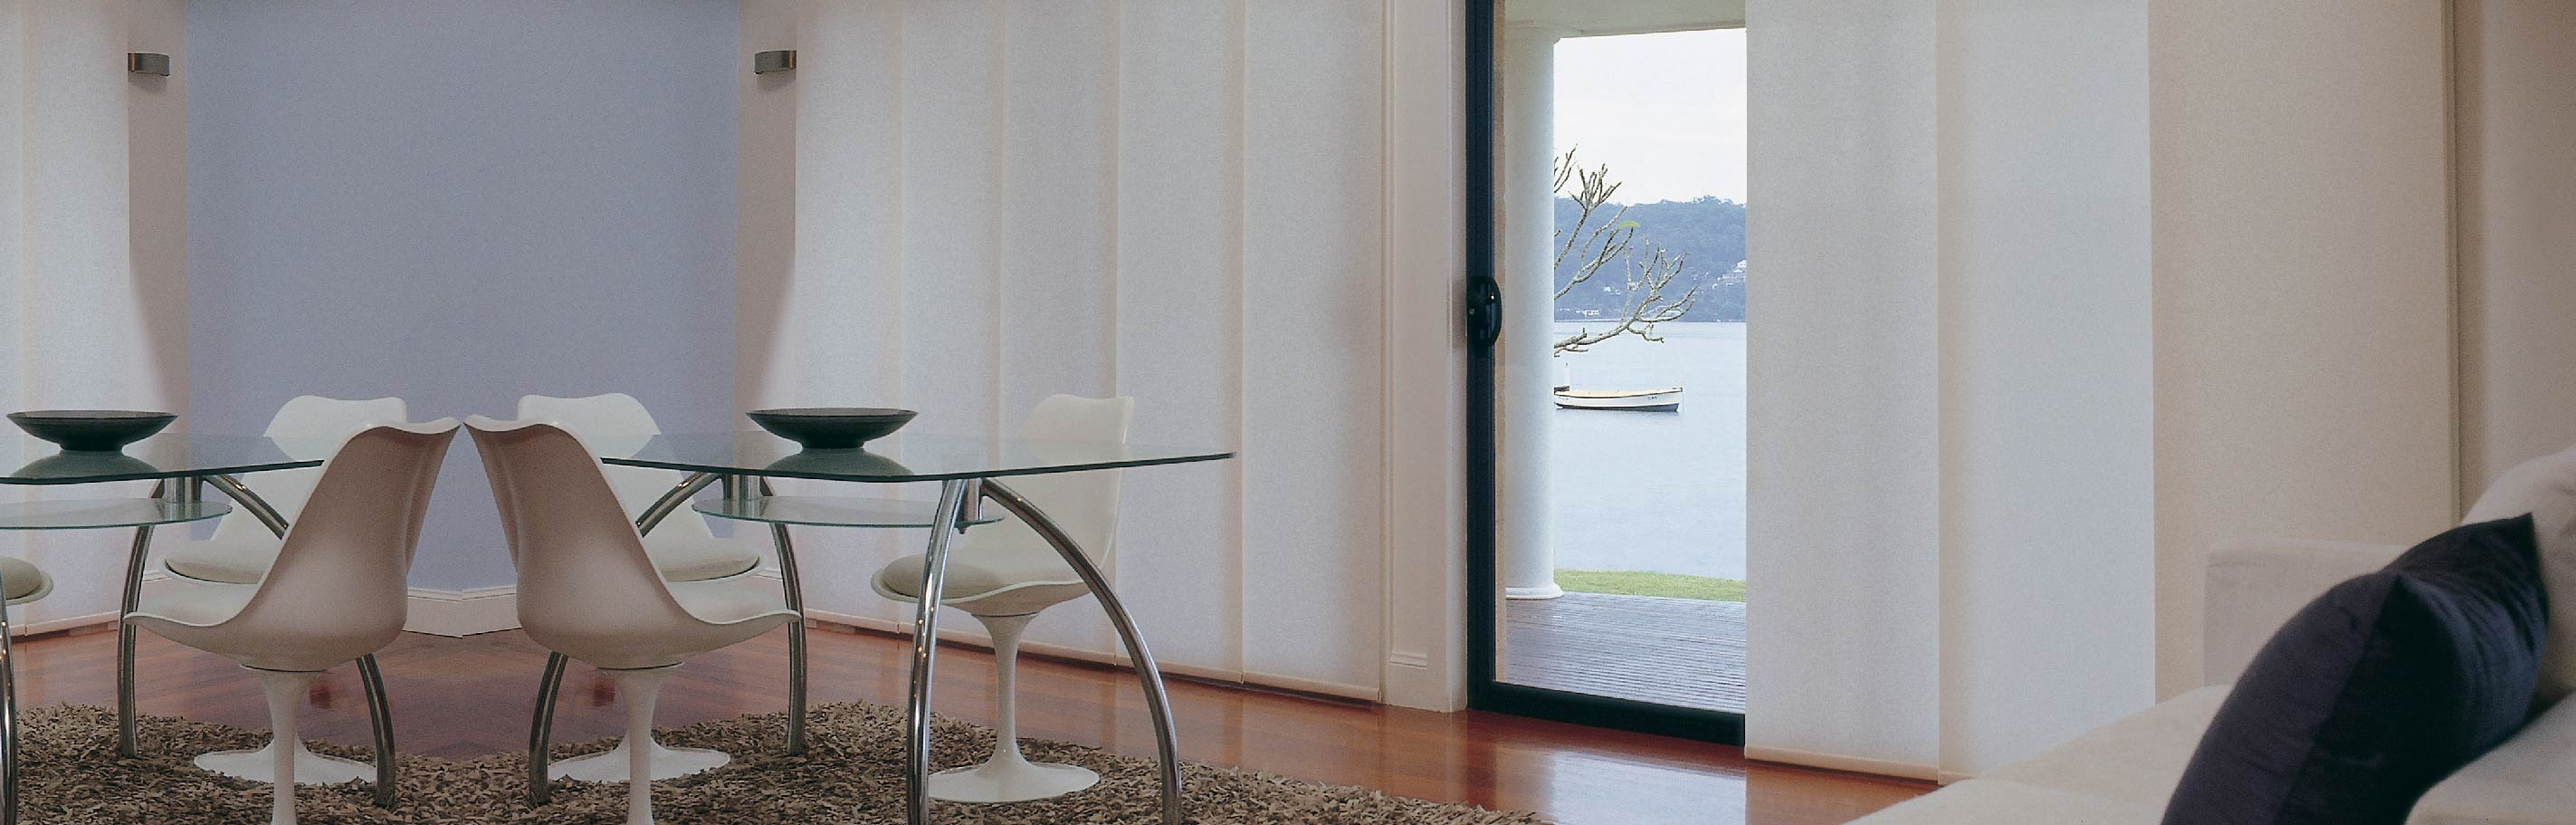 Luxaflex - Products - Softshades and Fabrics - Panel Glide Blinds Bottom